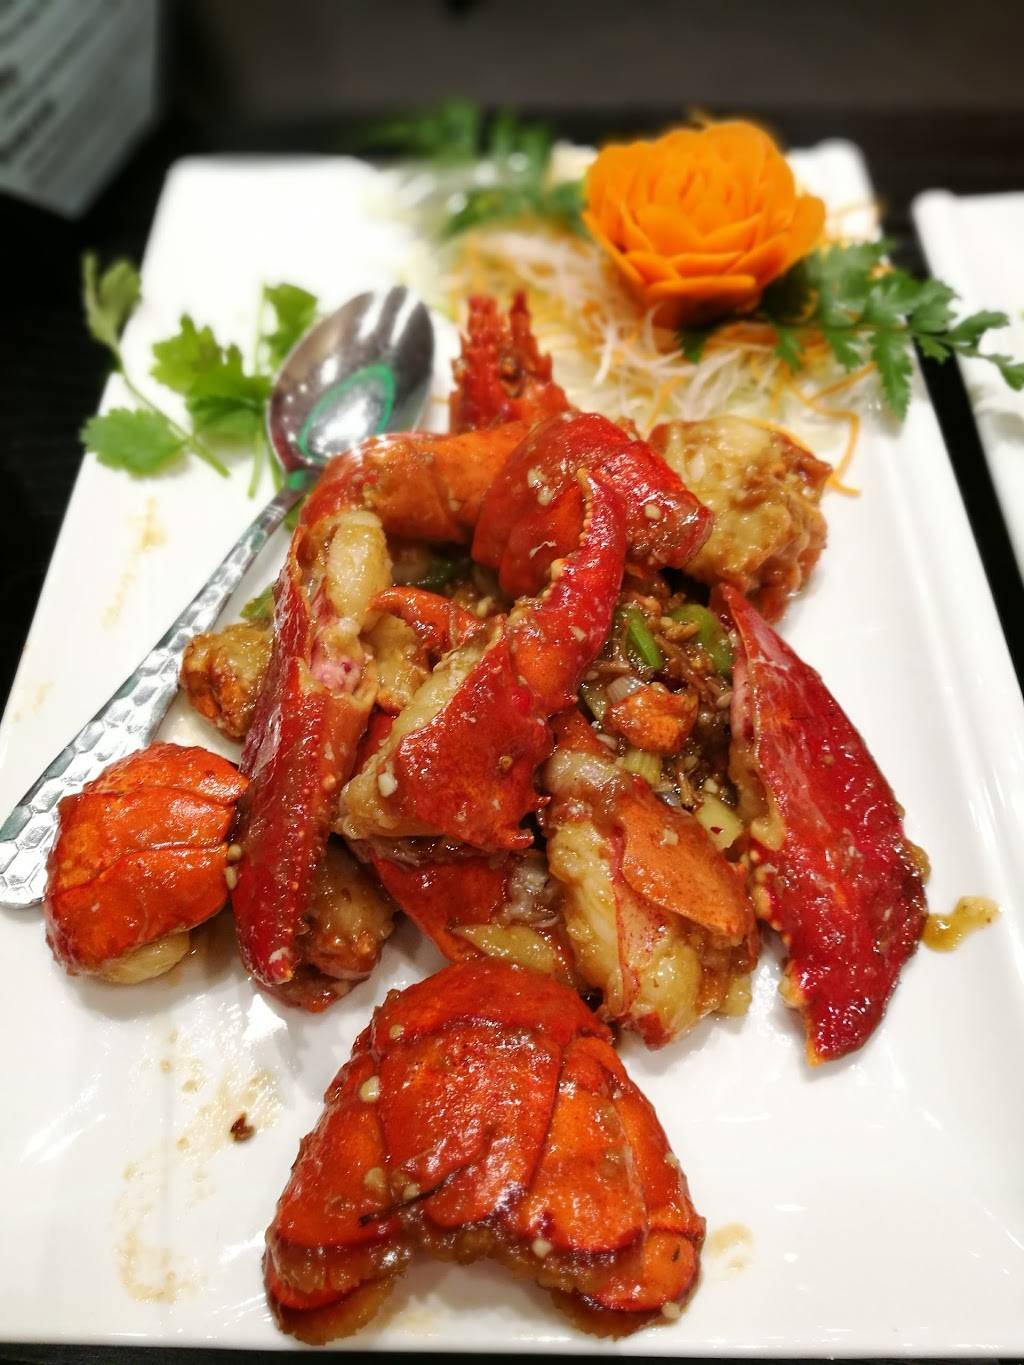 Aquarius Seafood Restaurant | restaurant | 230-234 Main St, Fort Lee, NJ 07024, USA | 2015928338 OR +1 201-592-8338